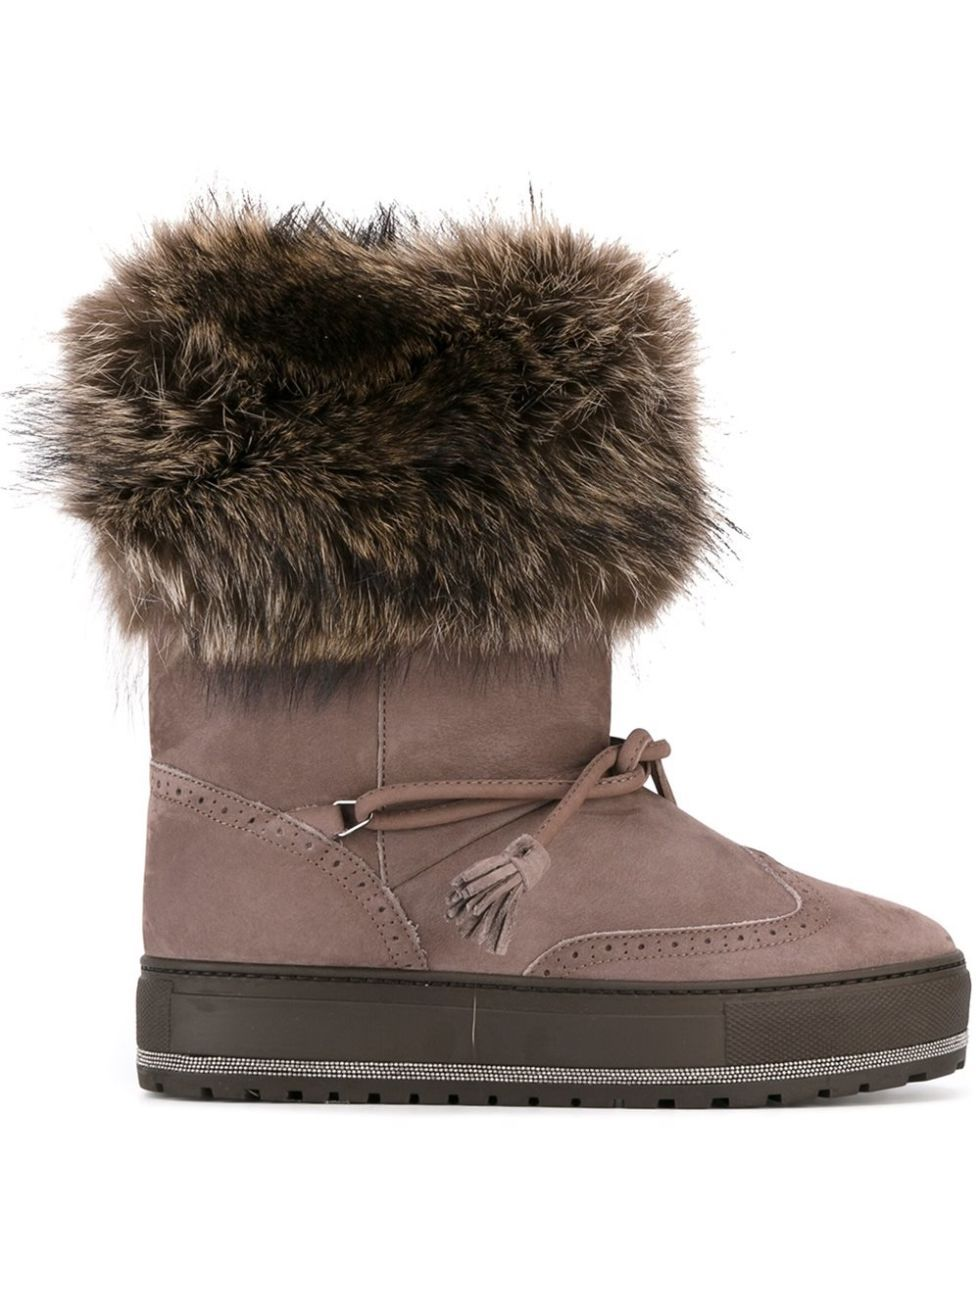 12 Snow Boots You Can Wear All Day Long  - HarpersBAZAAR.com